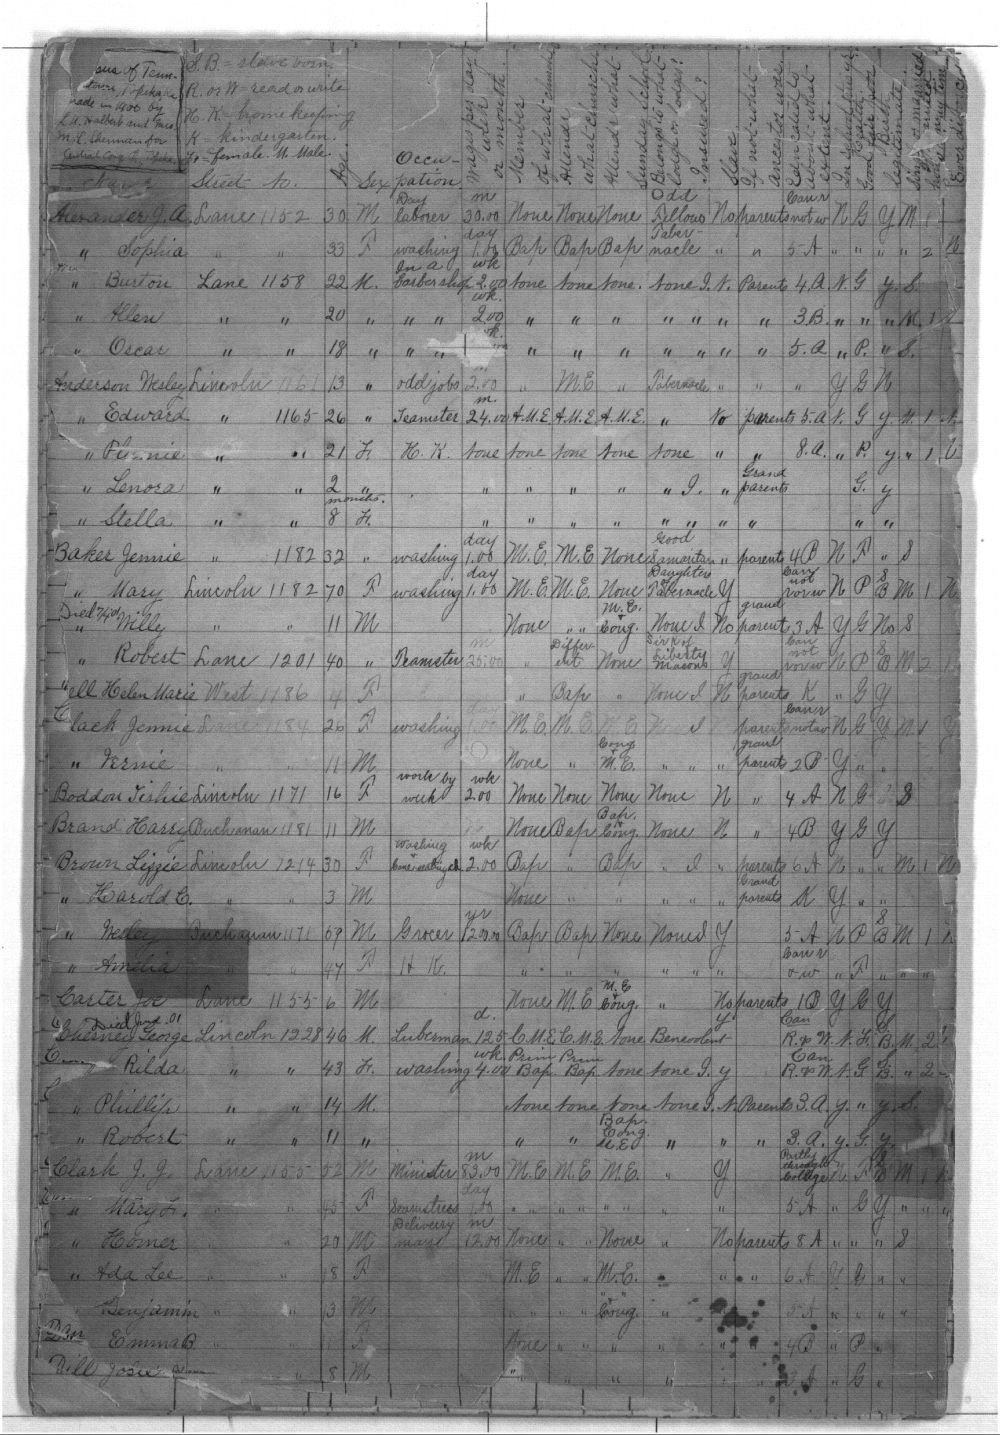 Tennessee Town census - 1